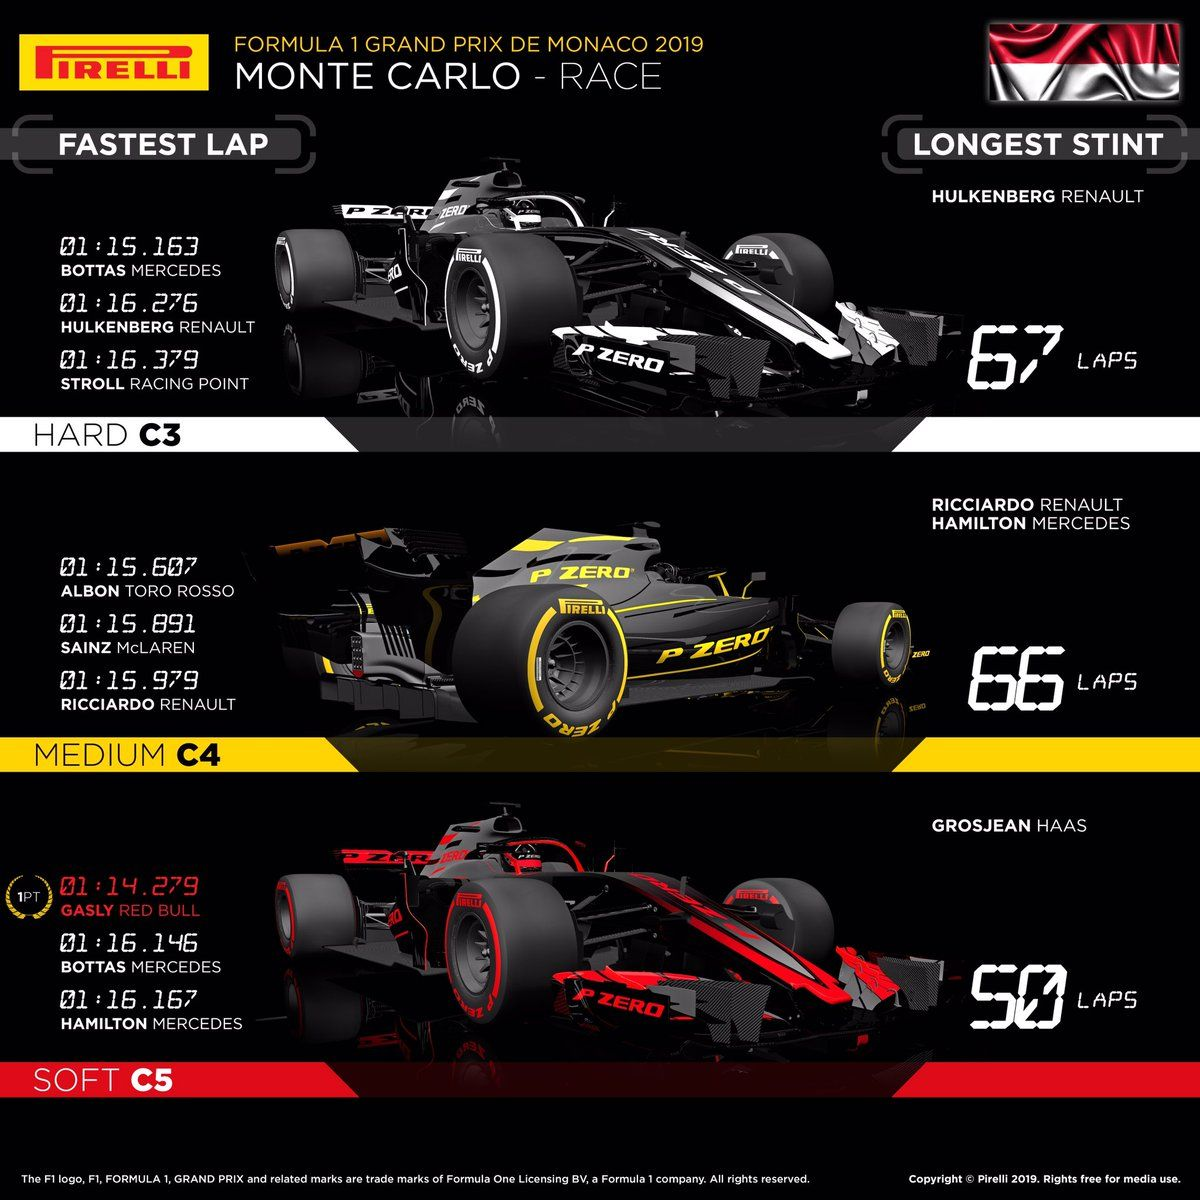 Pin By Some Guy On F1 2019 Racing Formula 1 Motorsport [ 1200 x 1200 Pixel ]